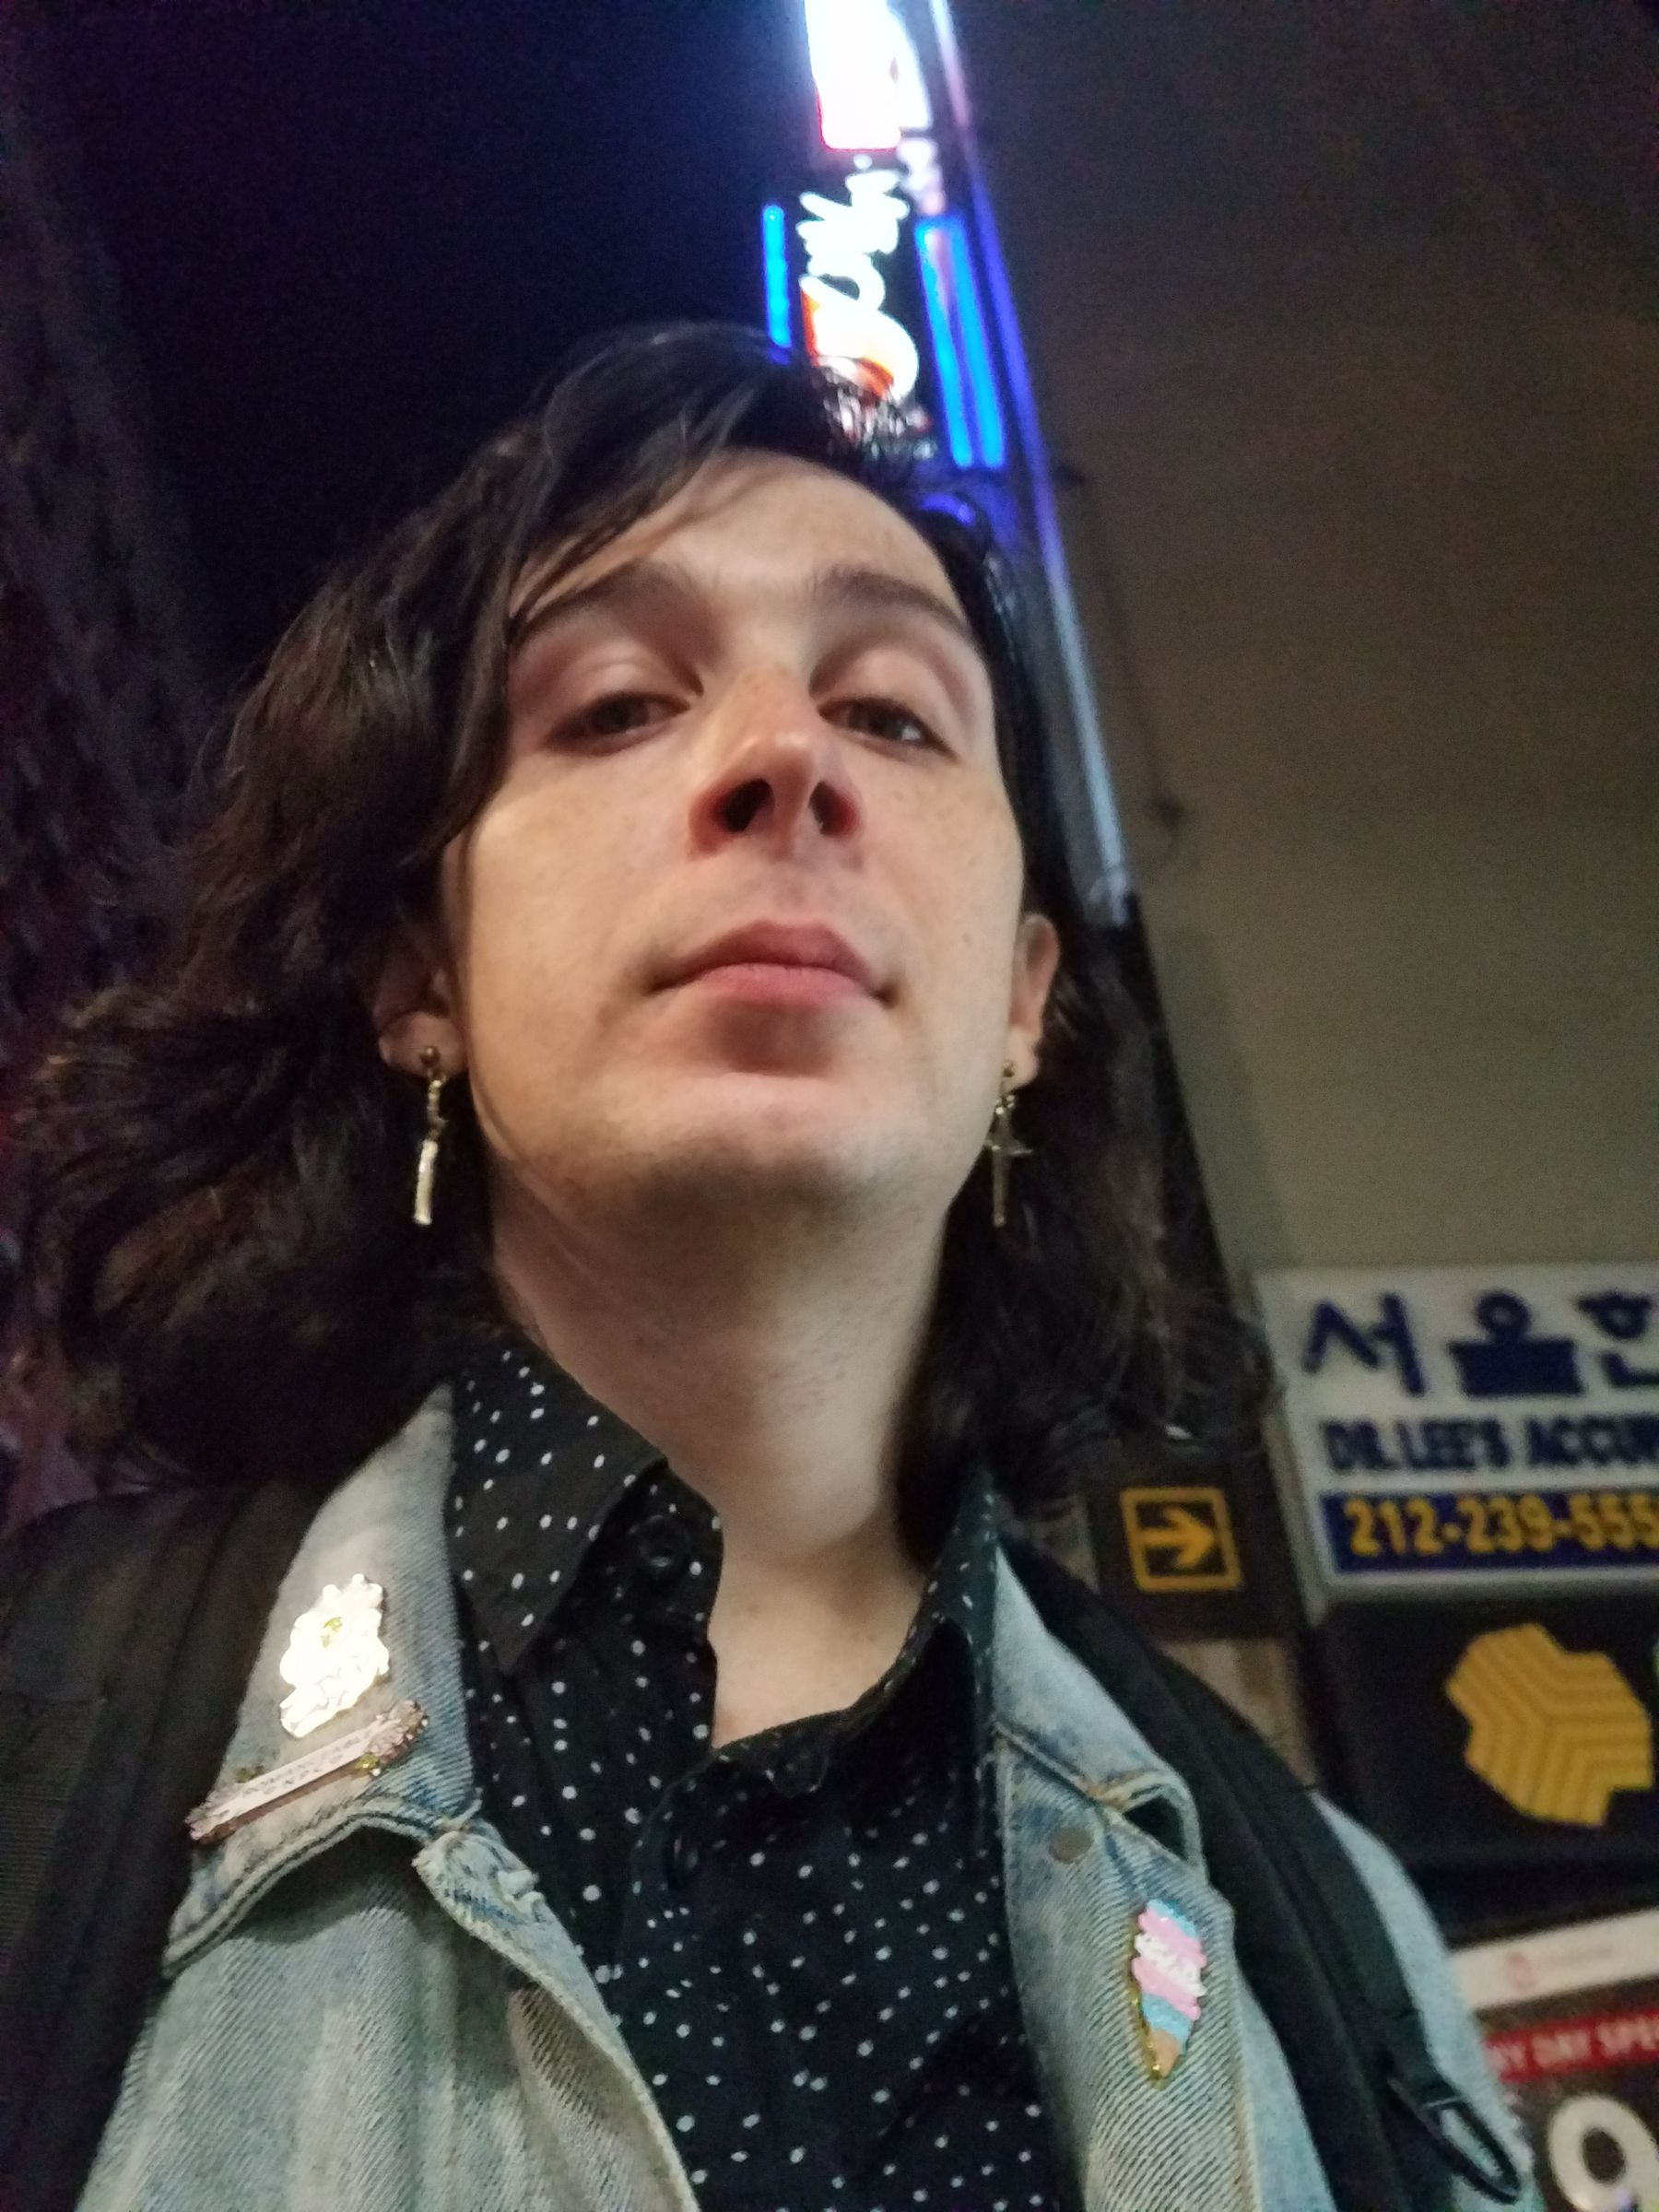 Upward looking selfie at night, taken on a city street with neon signage in the background. I'm wearing a denim jacket with pins on each lapel, over a white-on-black dotted button-down shirt.